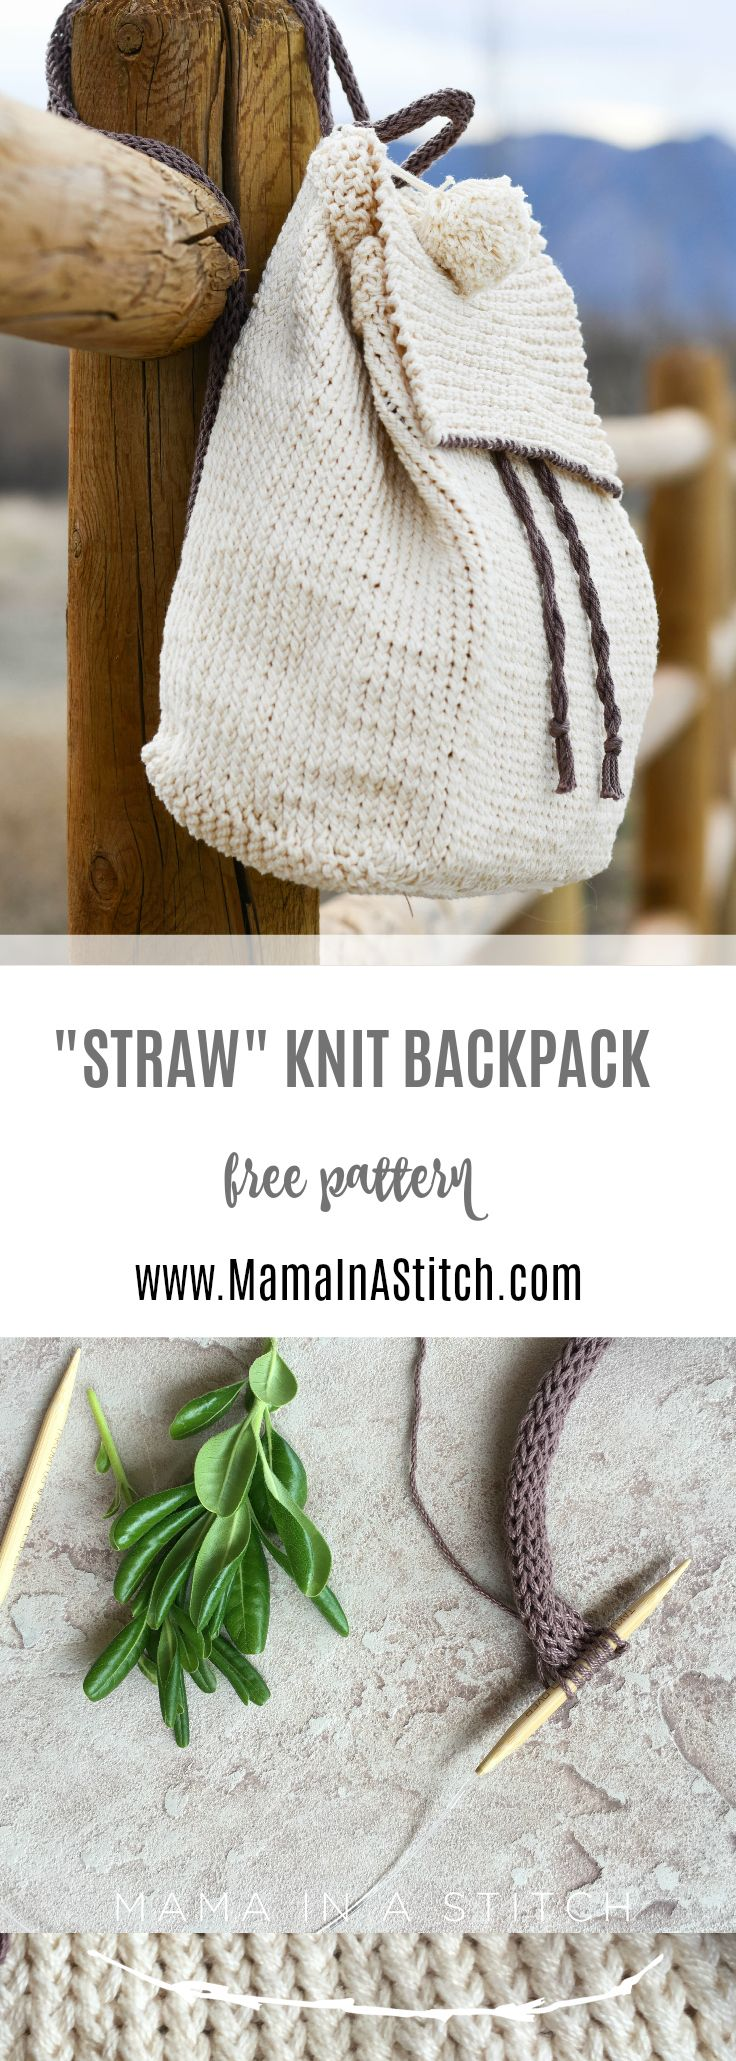 Straw-Like Easy Backpack Free Knitting Pattern #knitting